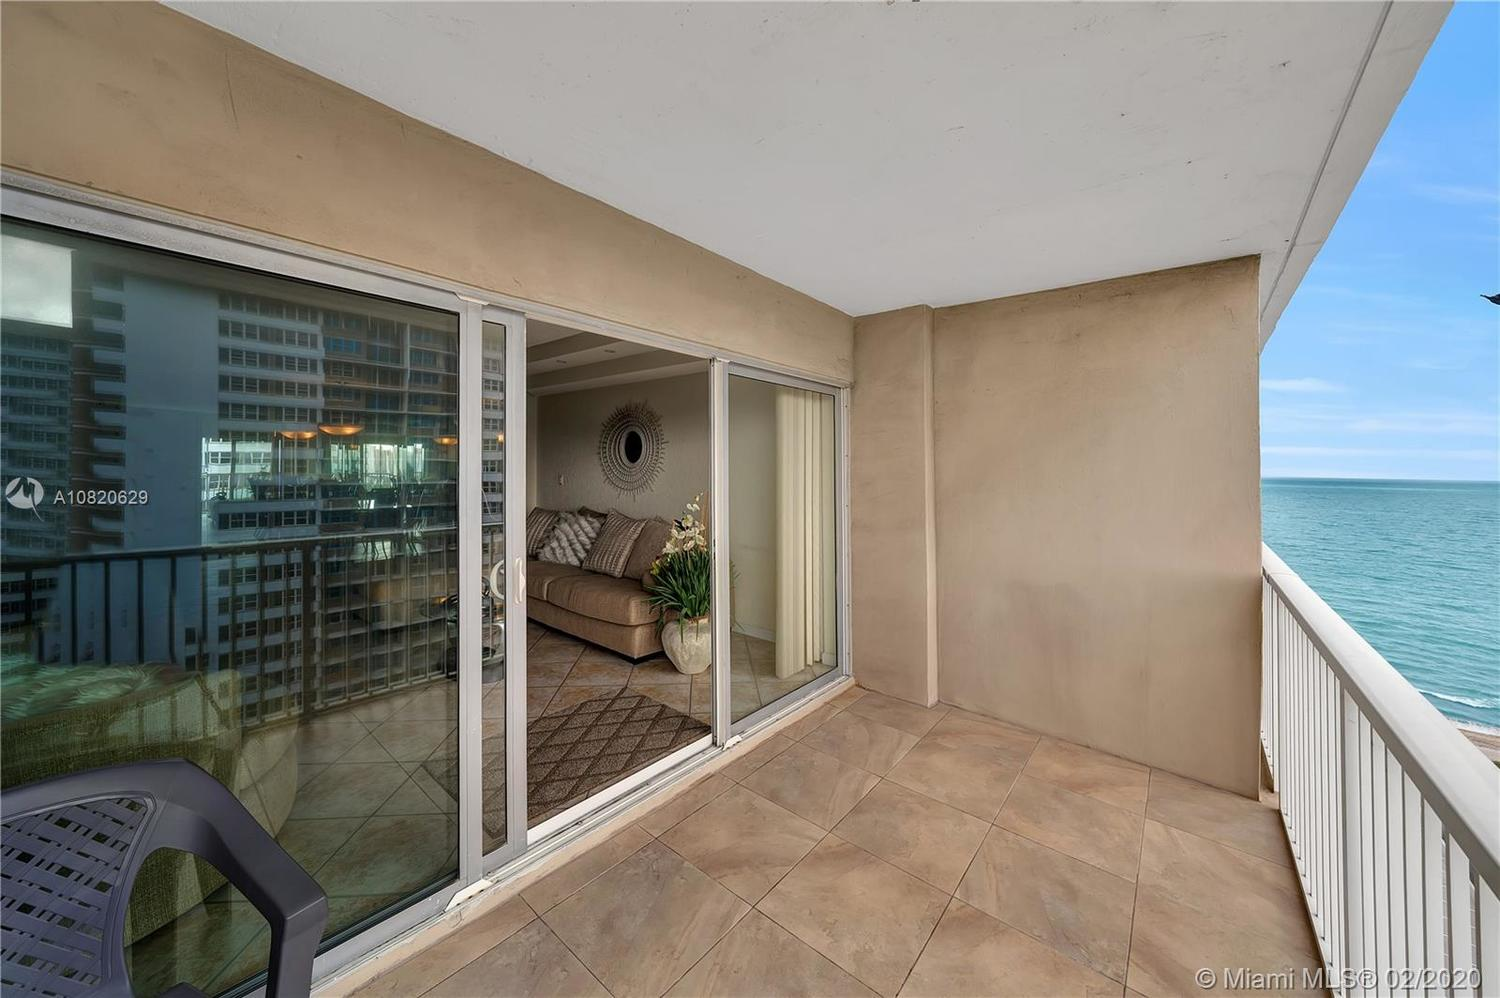 1980 South Ocean Drive Unit 16j Hallandale Beach Fl 33009 Compass